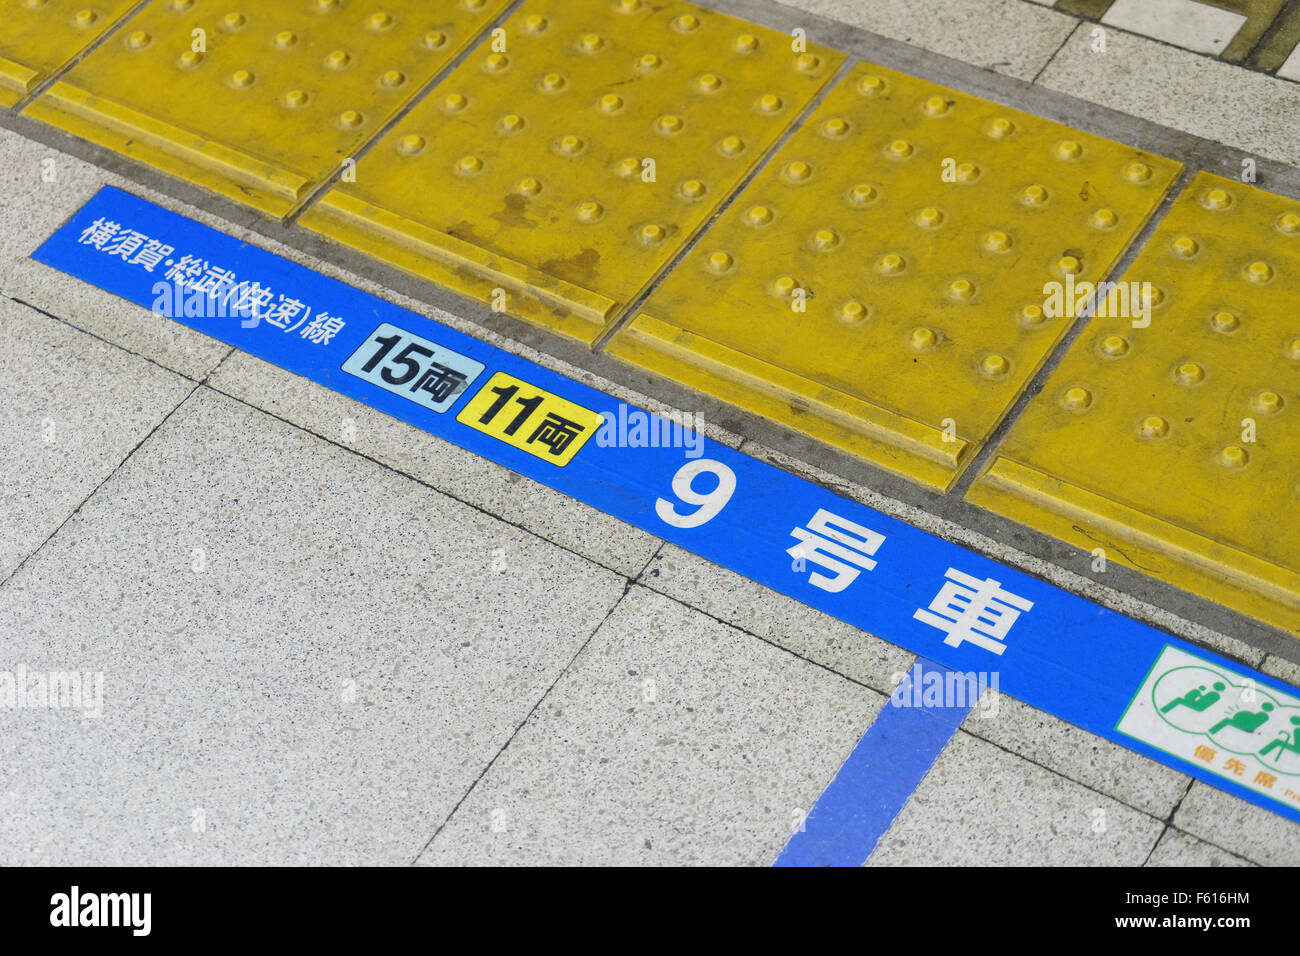 Markings on a railway platform in Tokyo to show where to stand. - Stock Image